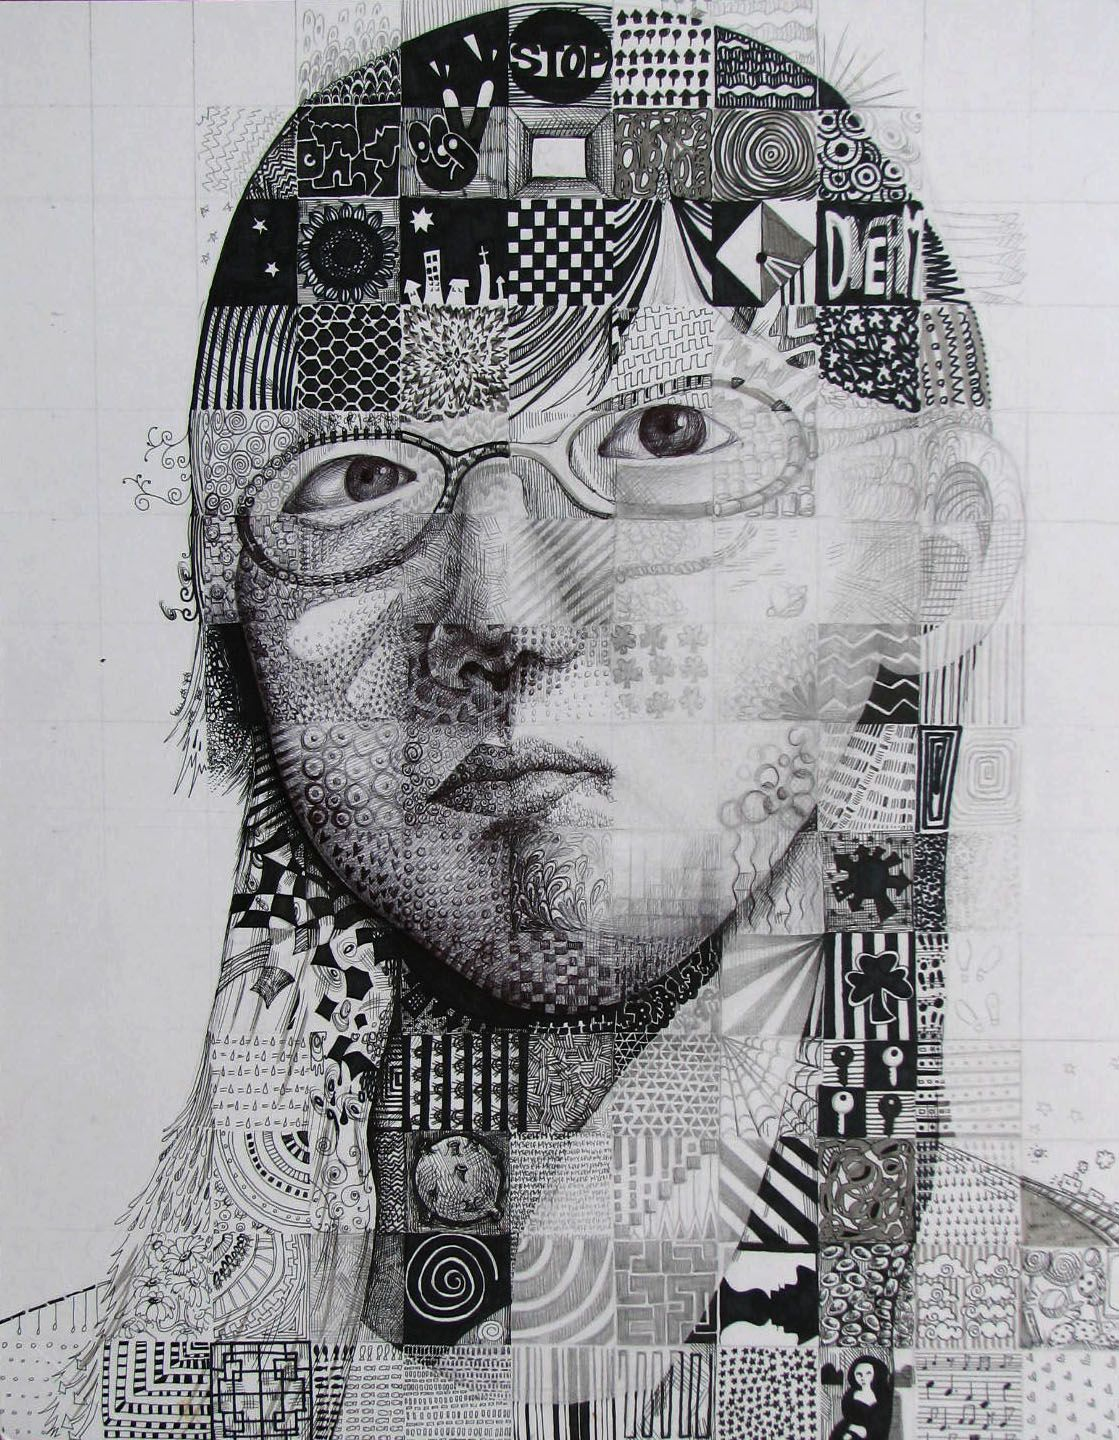 Self Portrait Texture Grid Mixed Media Student Work In